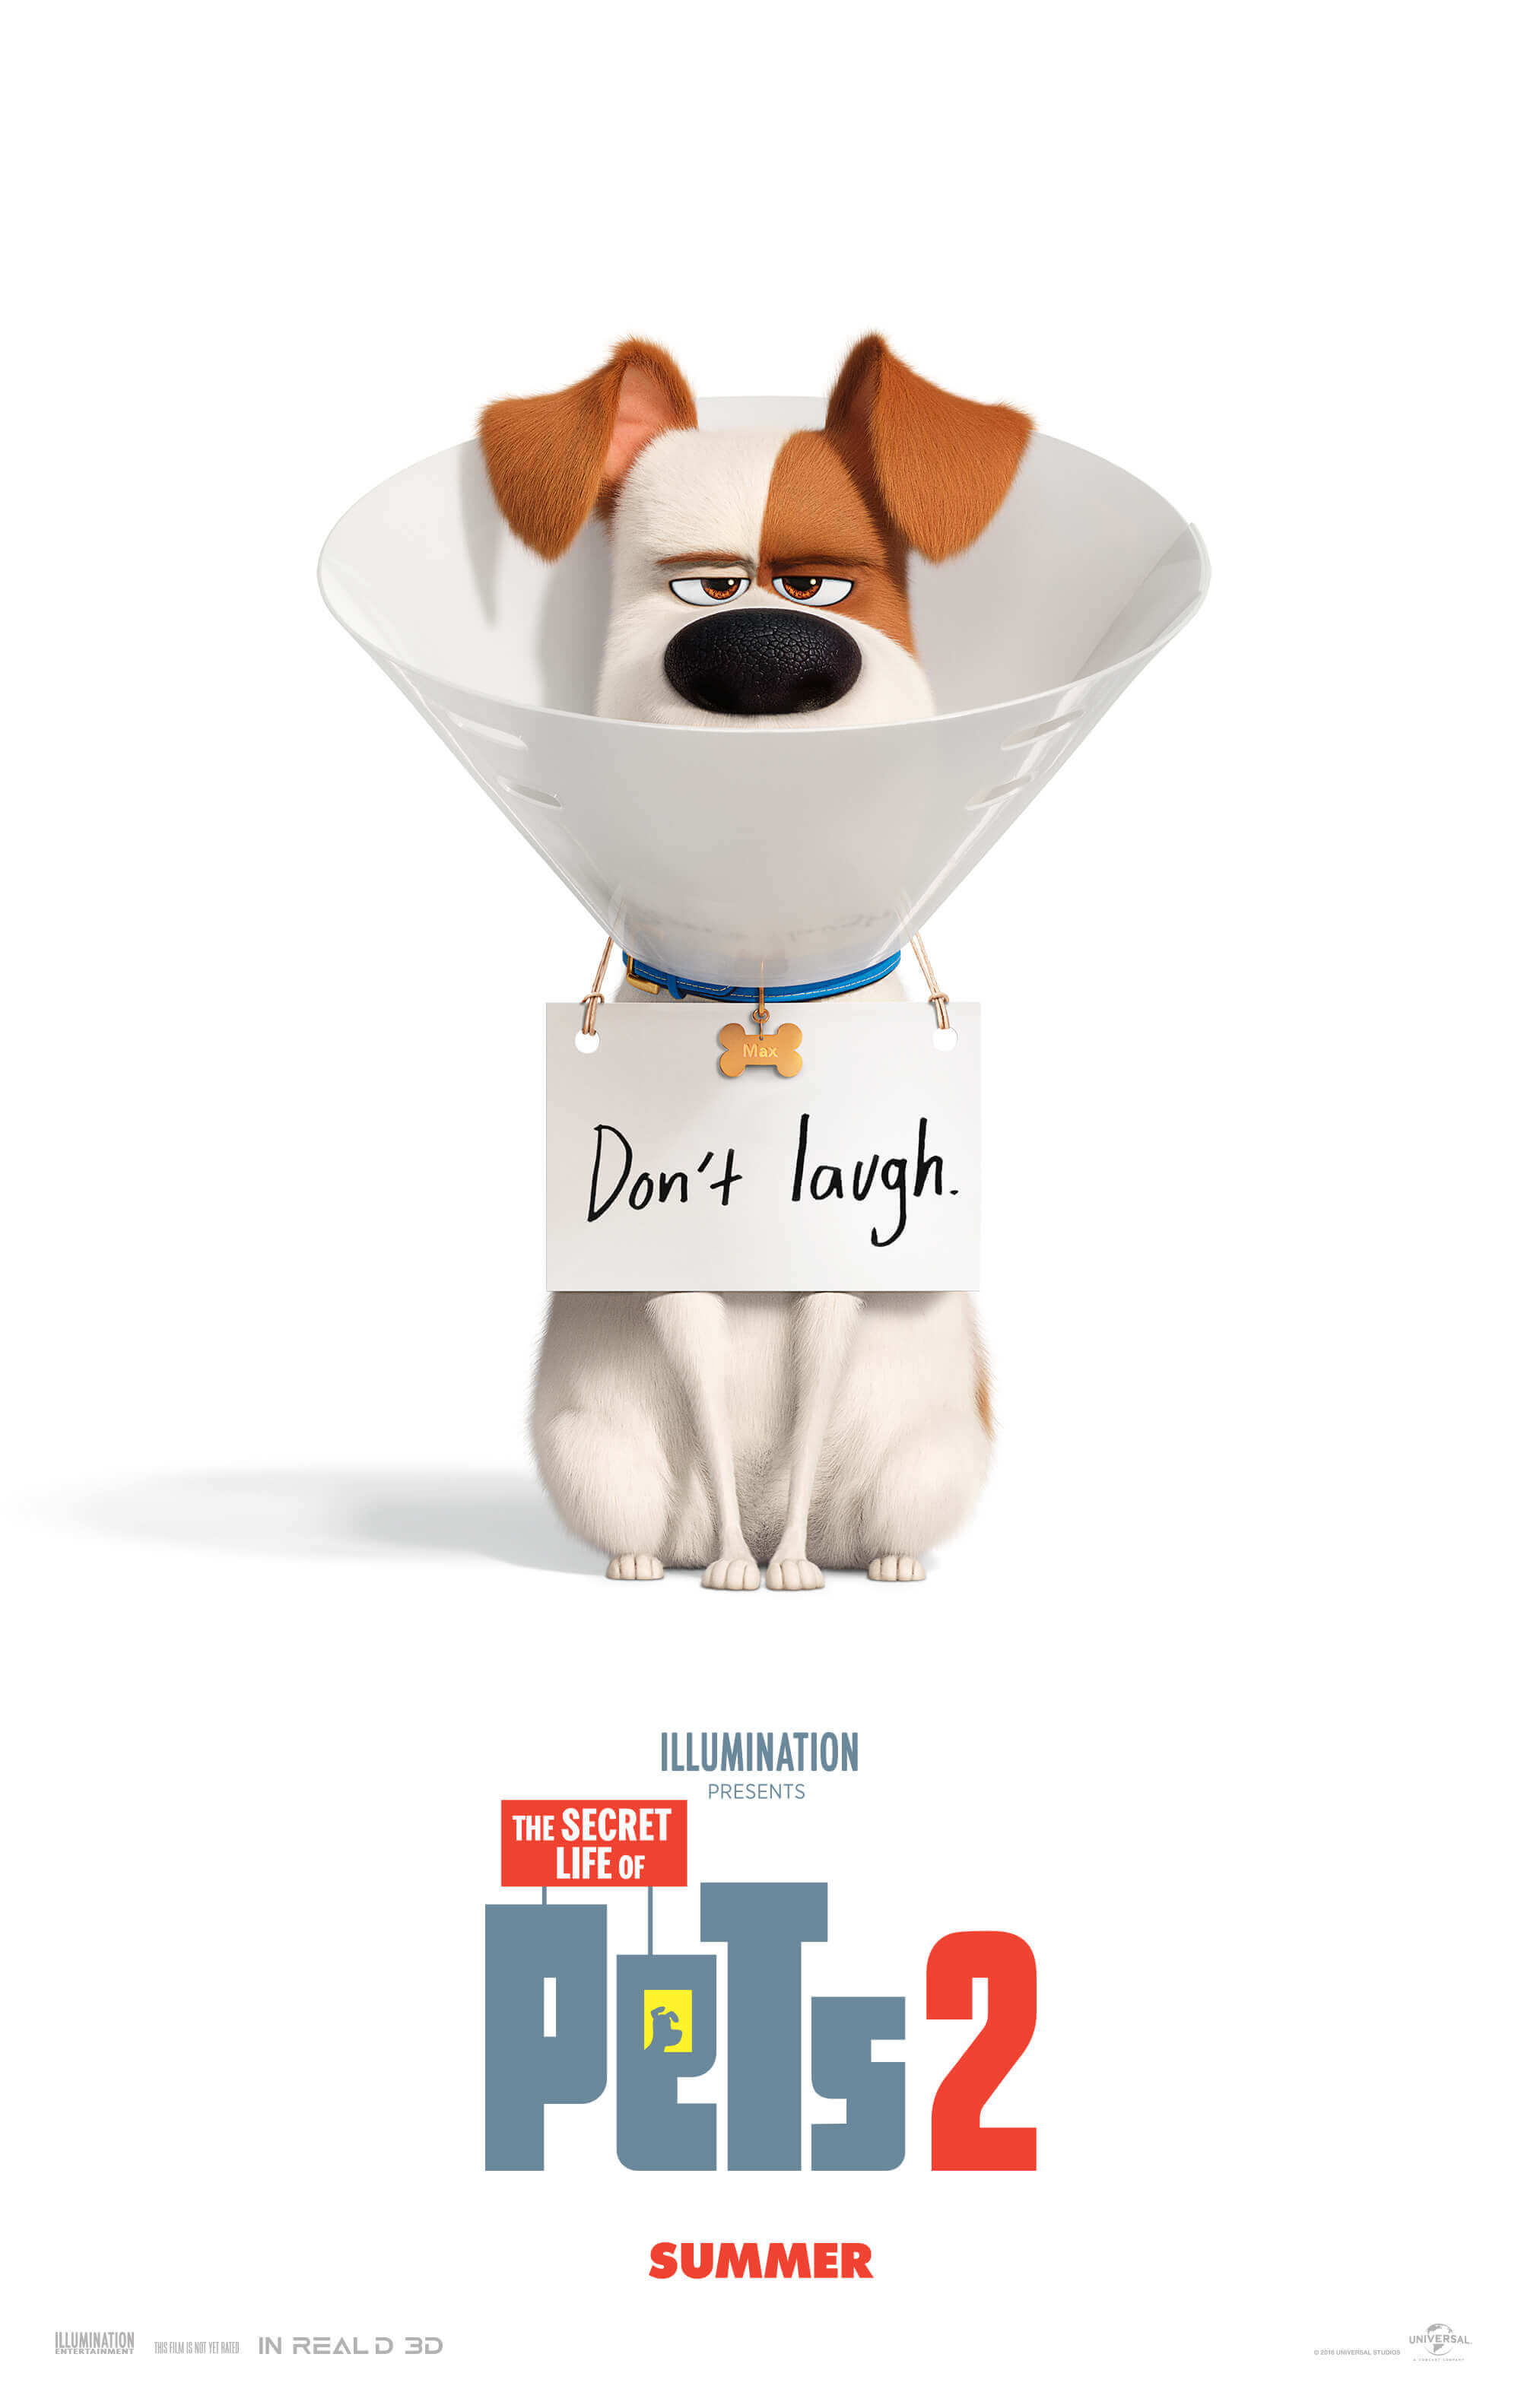 Image 1 of the The Secret Life of Pets 2 gallery